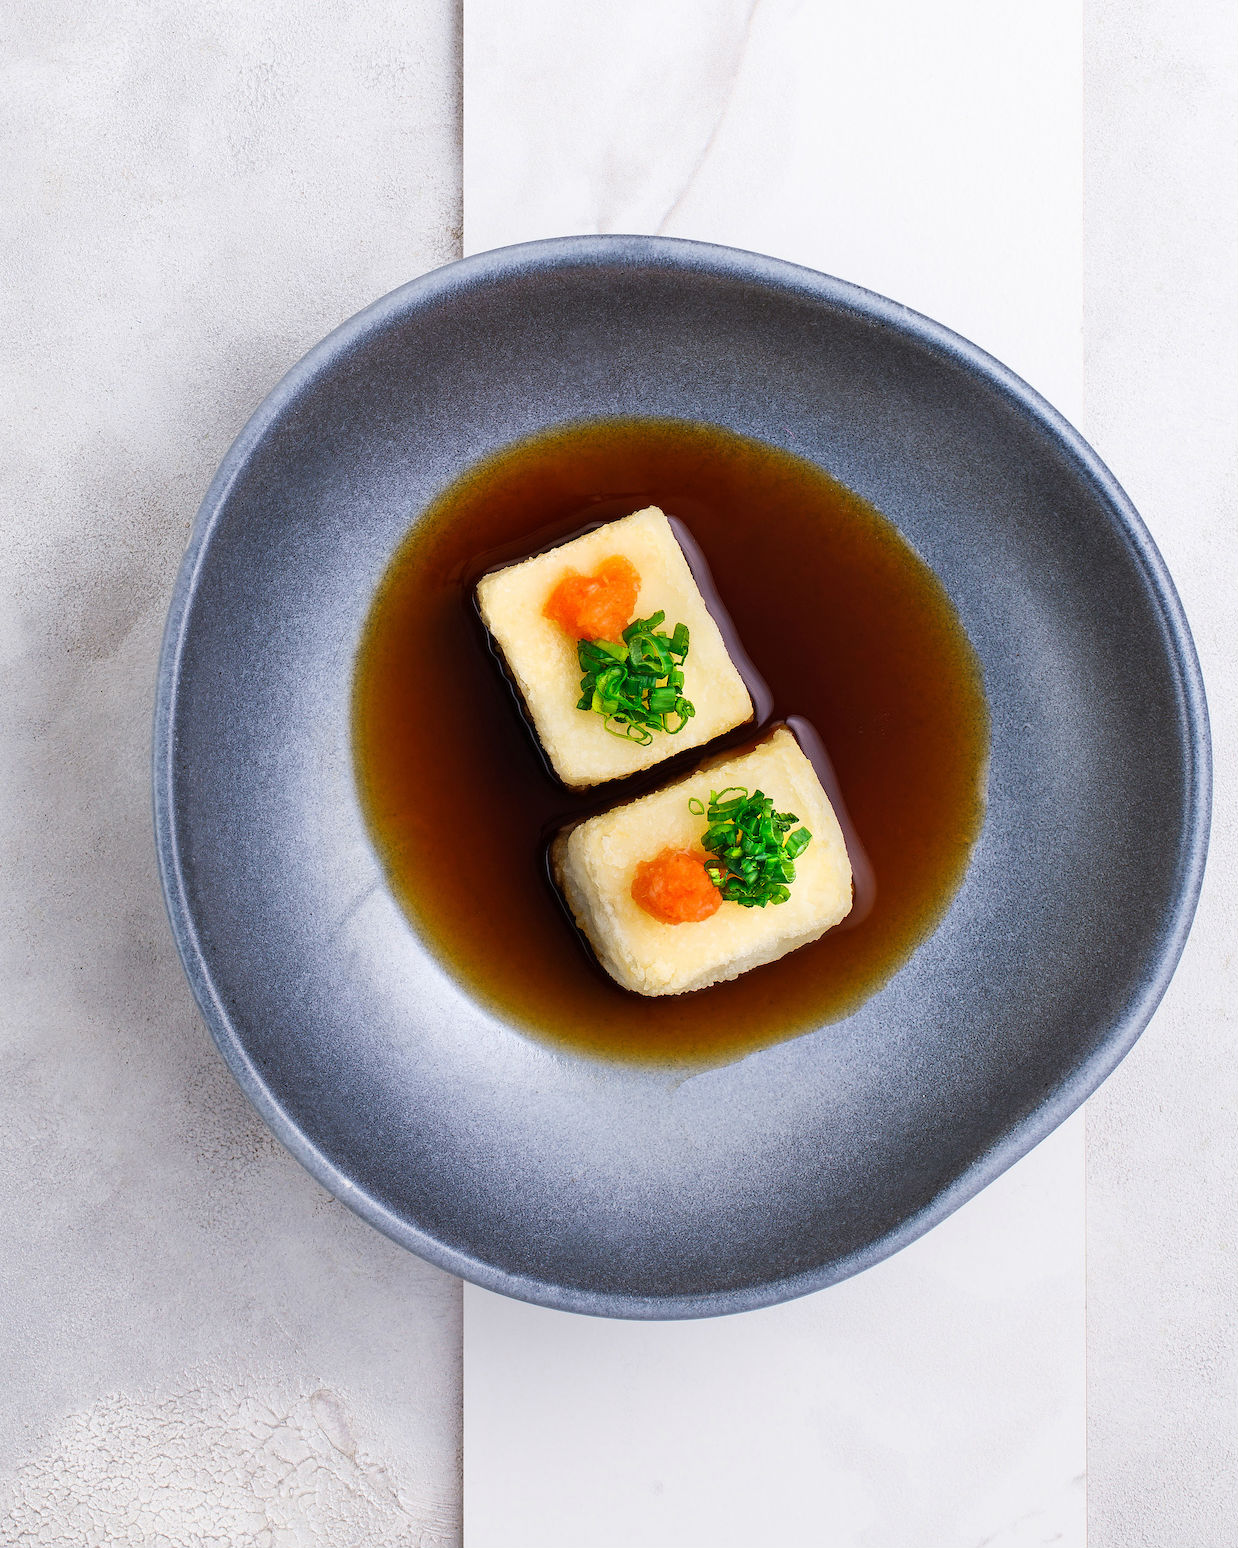 Recipe: A tofu dish for those who love Japanese food